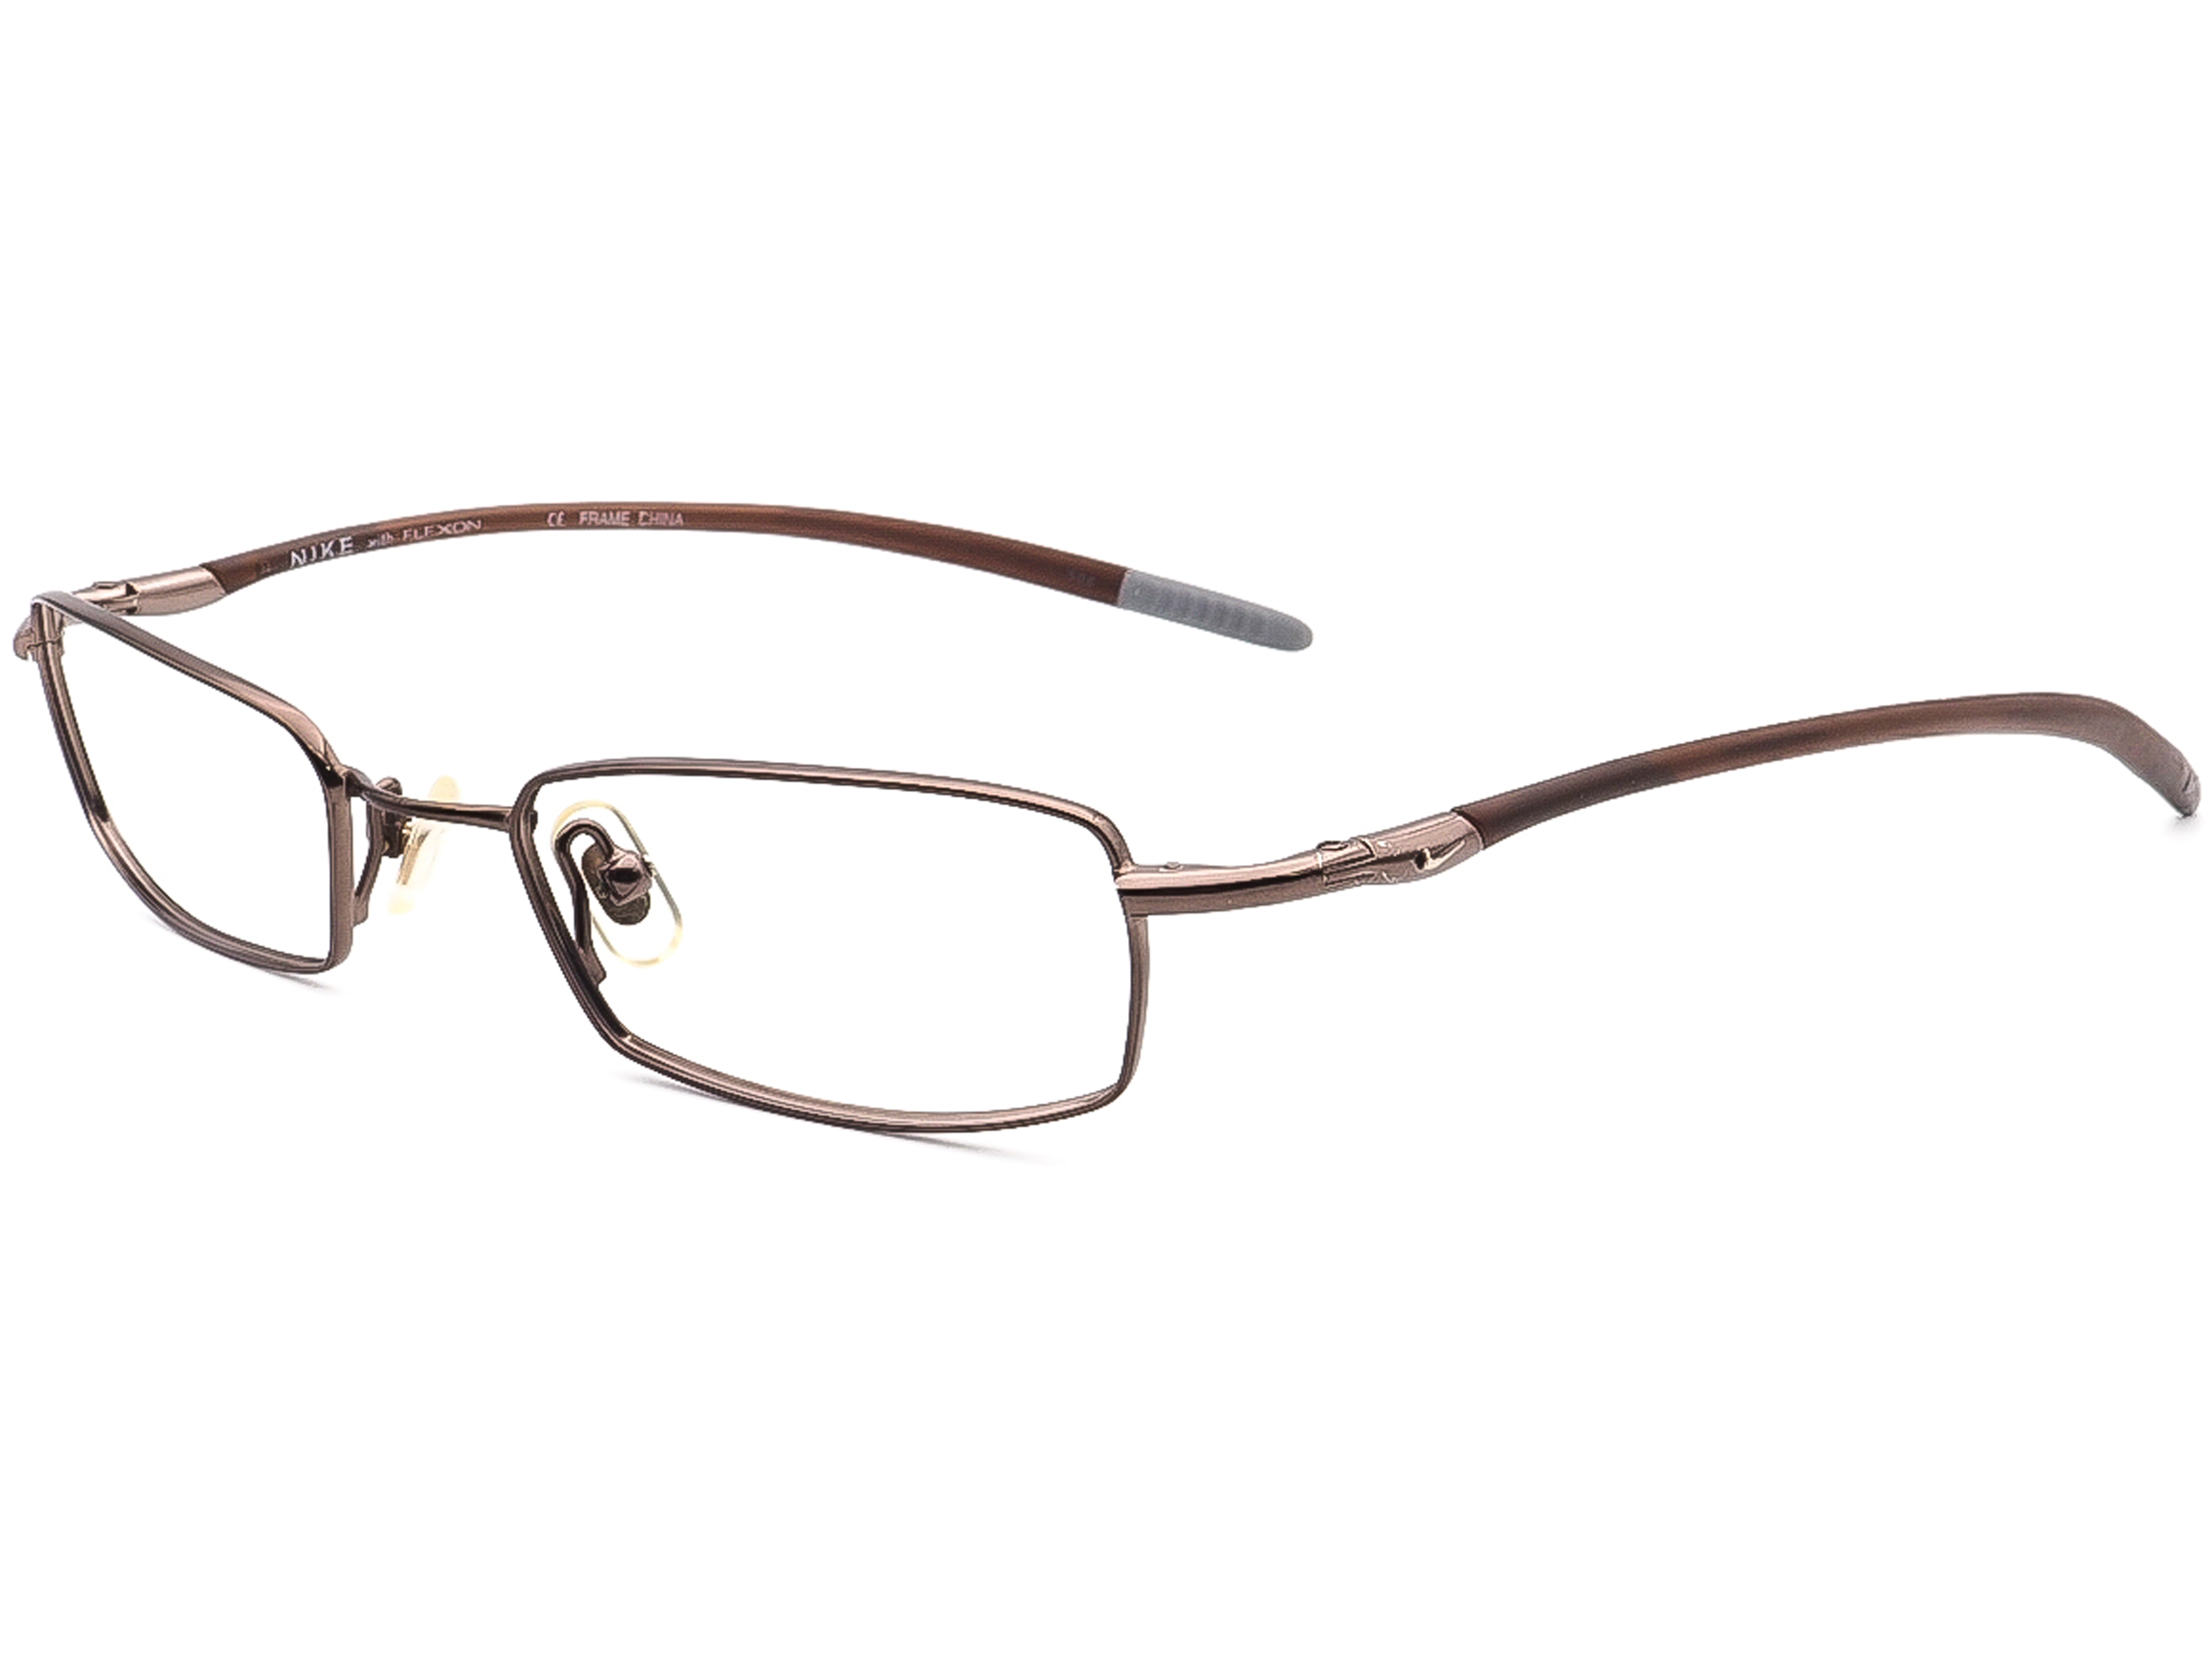 Nike Nike With Flexon 4080 200 Eyeglasses